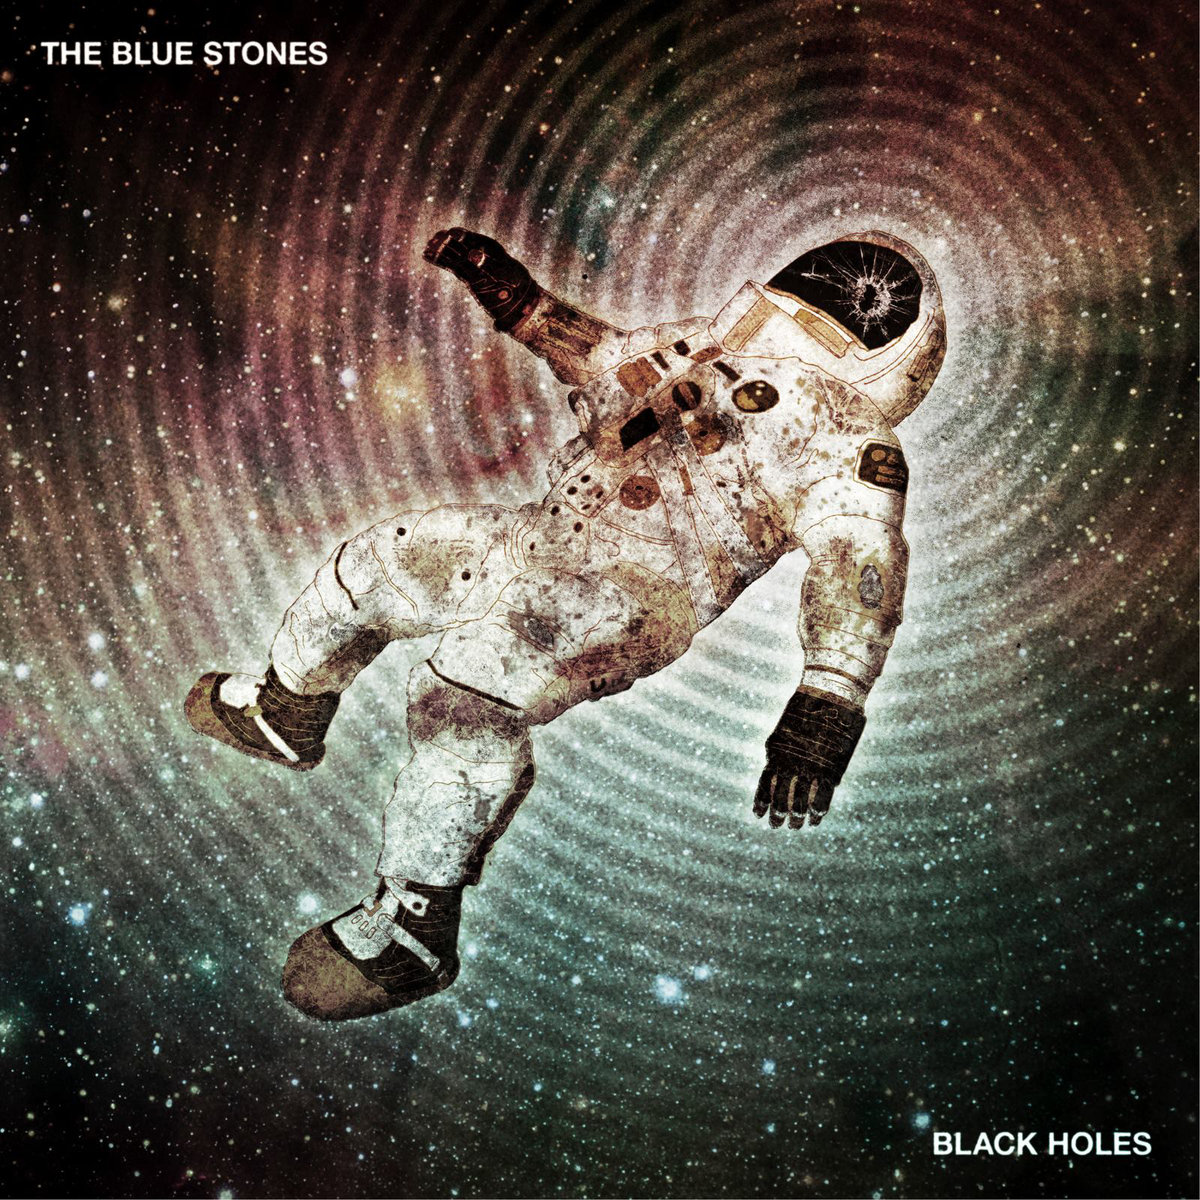 The Blue Stones - Magic @ 'BLACK HOLES' album (alternative, blues)